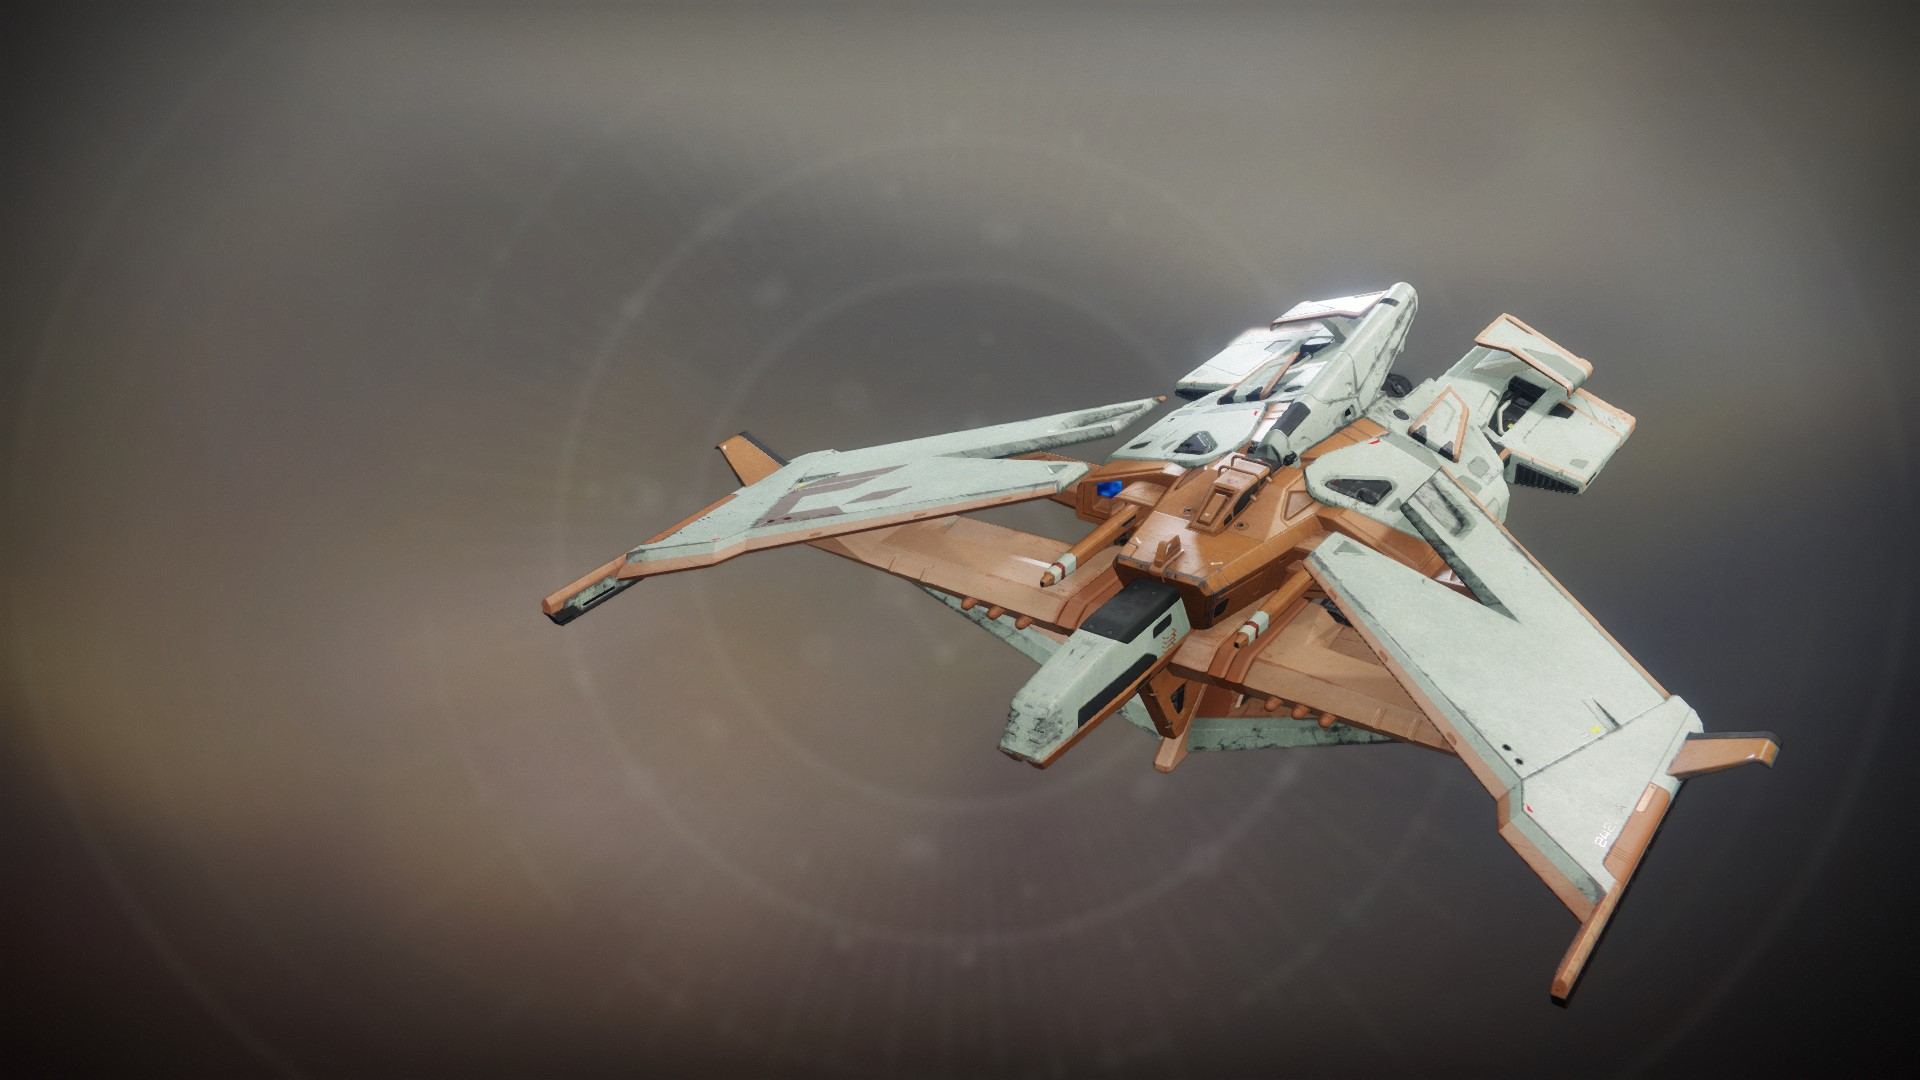 The First Domino Destiny 2 Legendary Ship Lightgg